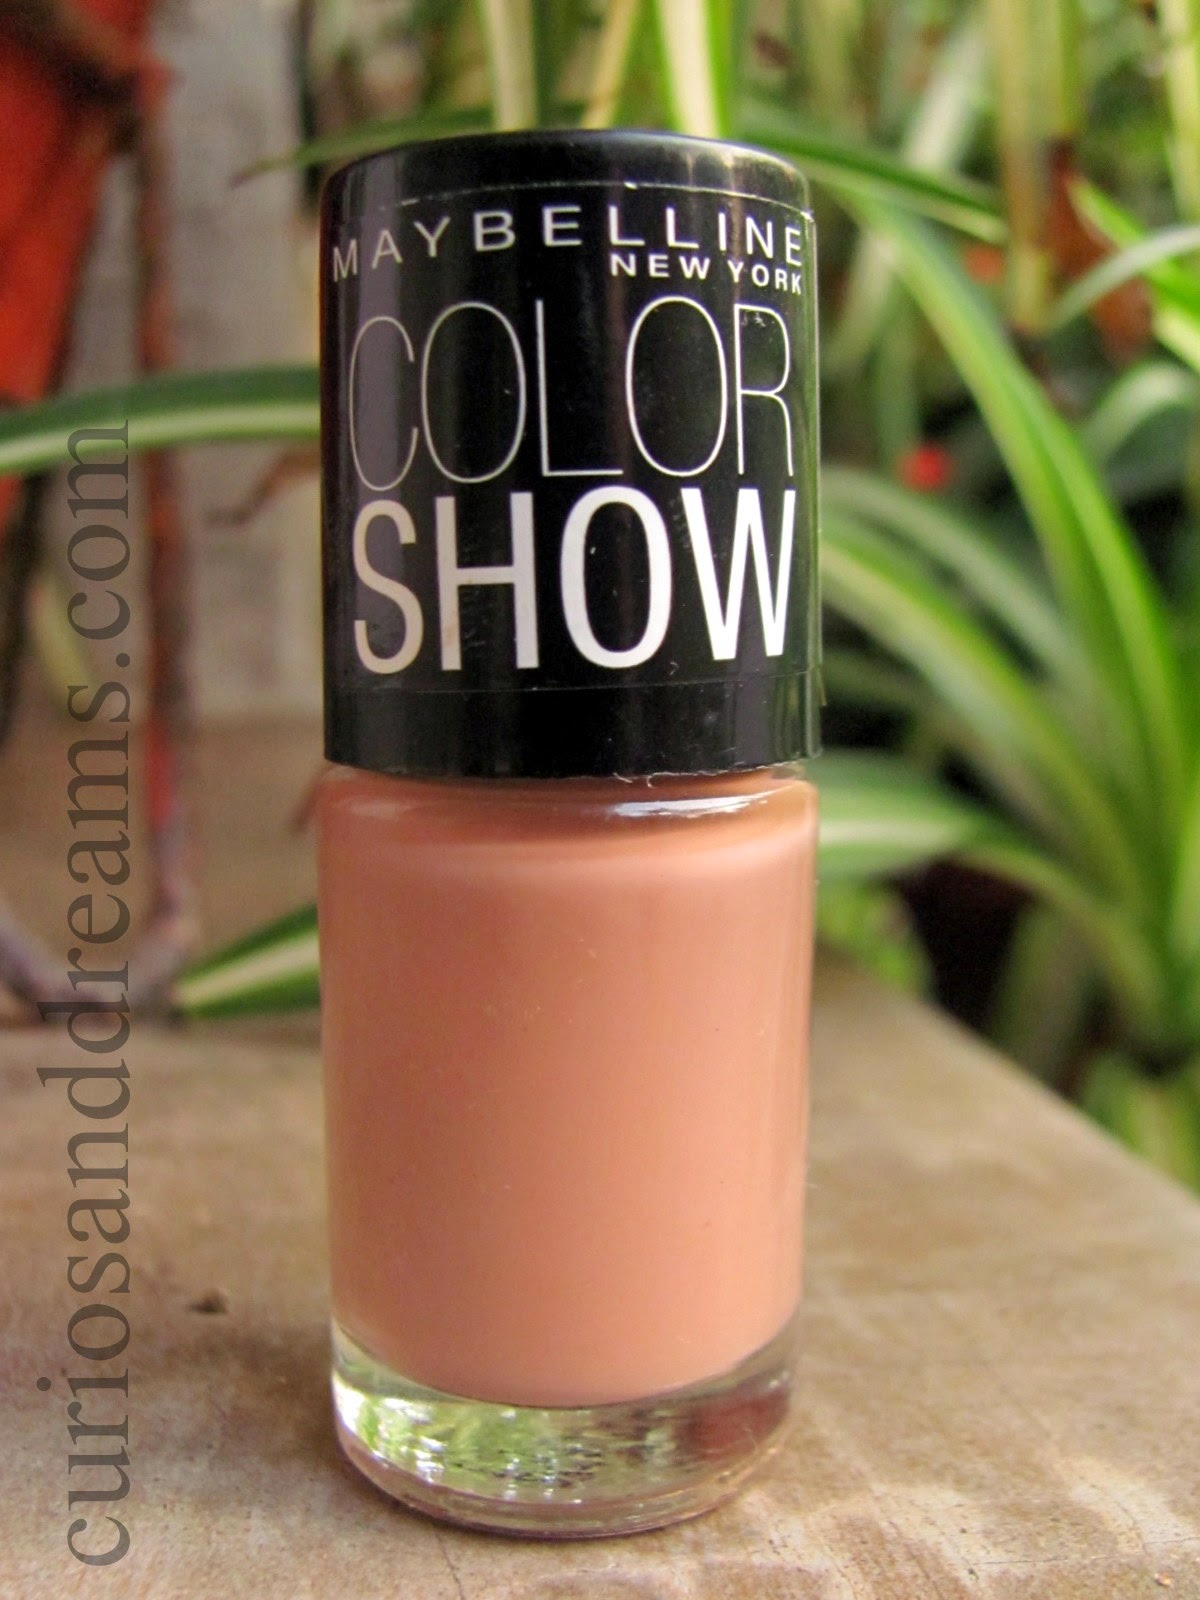 Maybelline Color Show Nude Skin review, Maybelline Color Show Nude Skin swatches